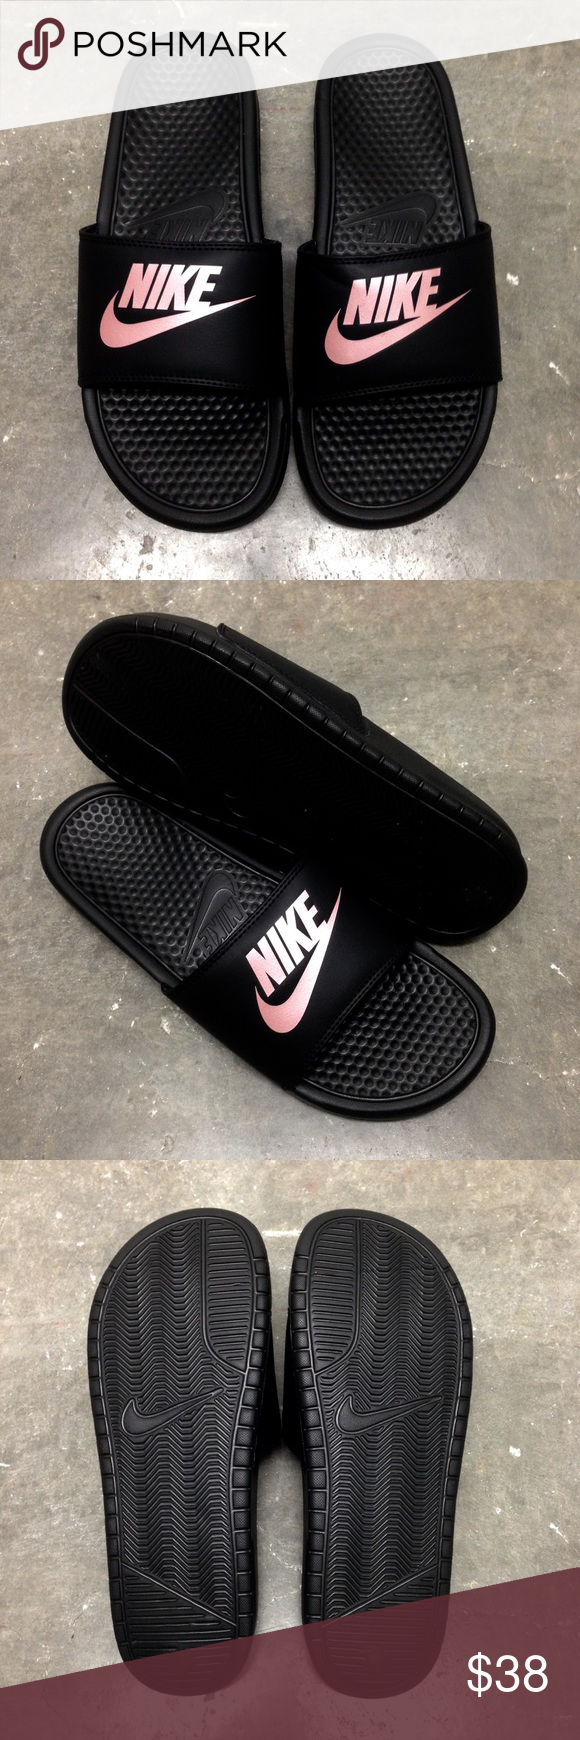 cc1e1da862d87 WMNS NIKE BENASSI SLIDES JUST DO IT JDI BLACK ROSE Women Nike Benassi